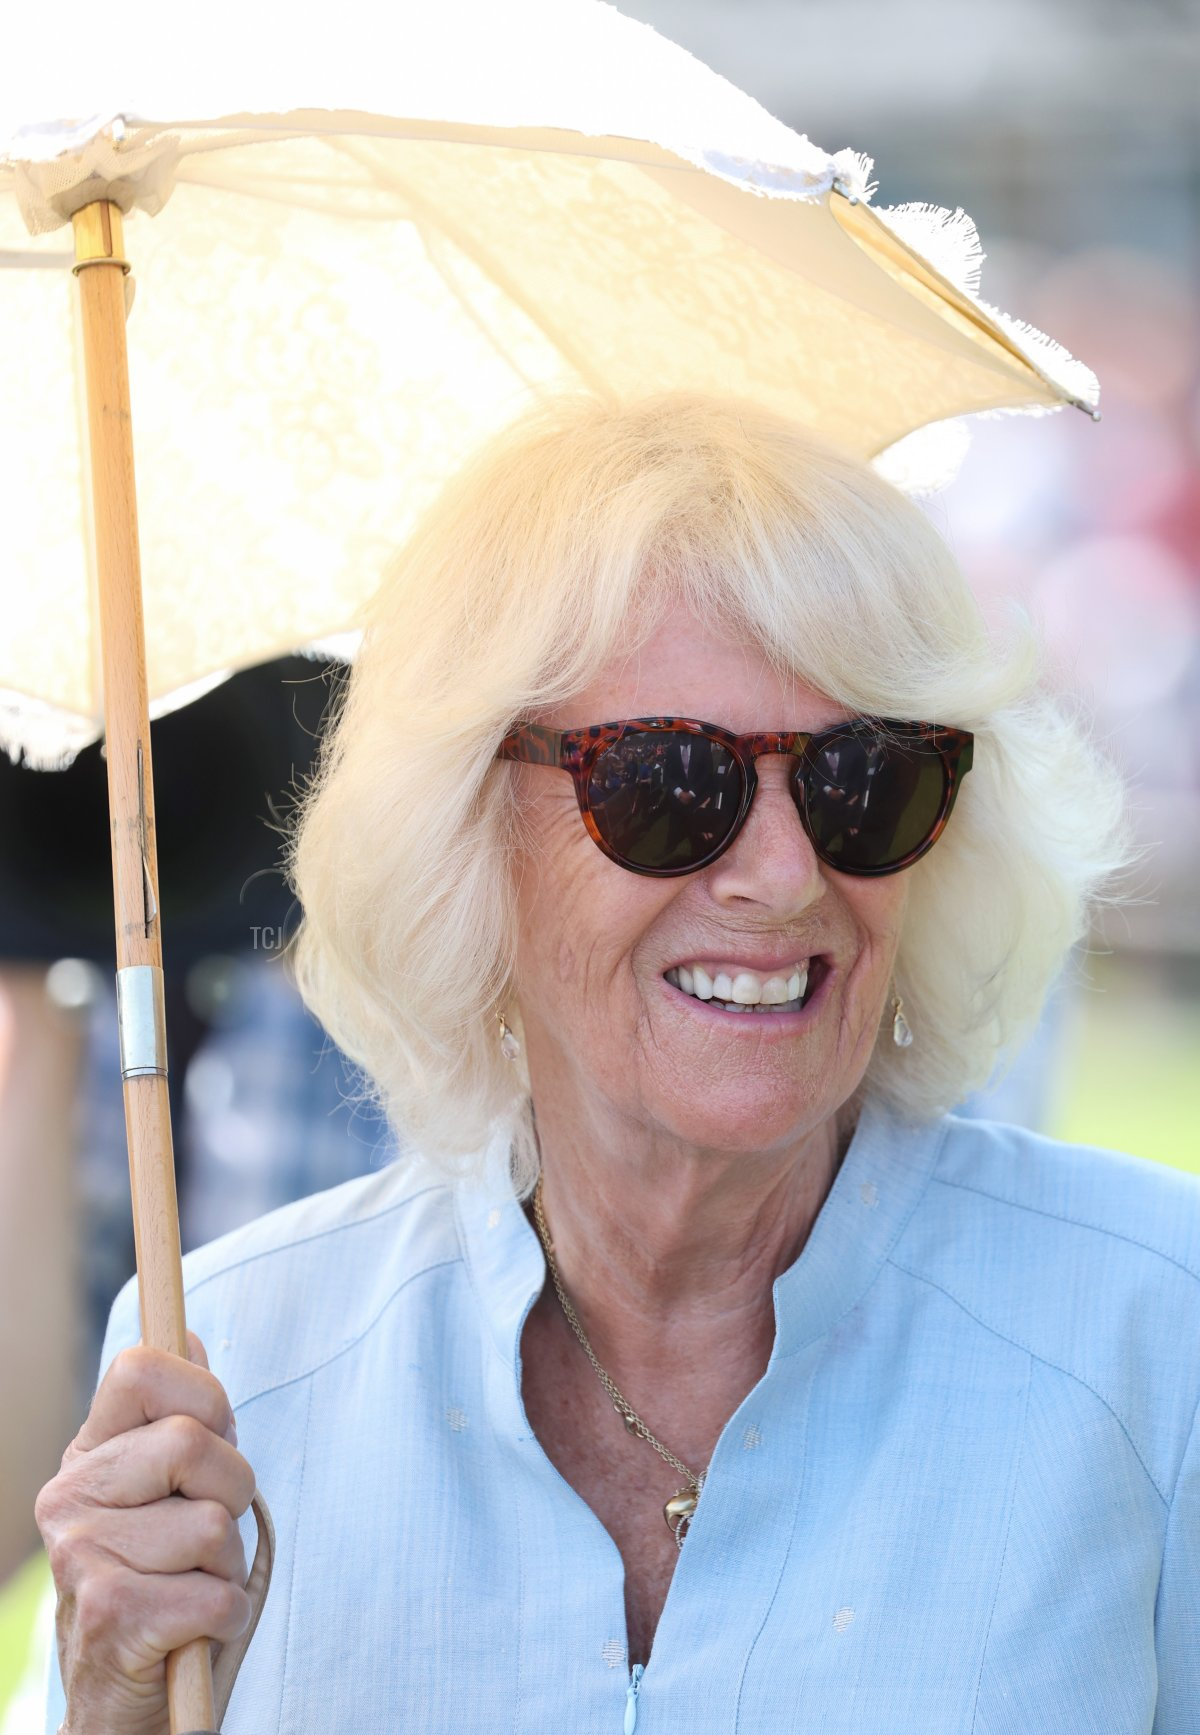 Camilla, Duchess of Cornwall attends a gathering of the town's community groups and young people in Victoria Park with Prince Charles, Prince of Wales during Day 3 of their visit to Devon and Cornwall on July 21, 2021 in Bideford, England